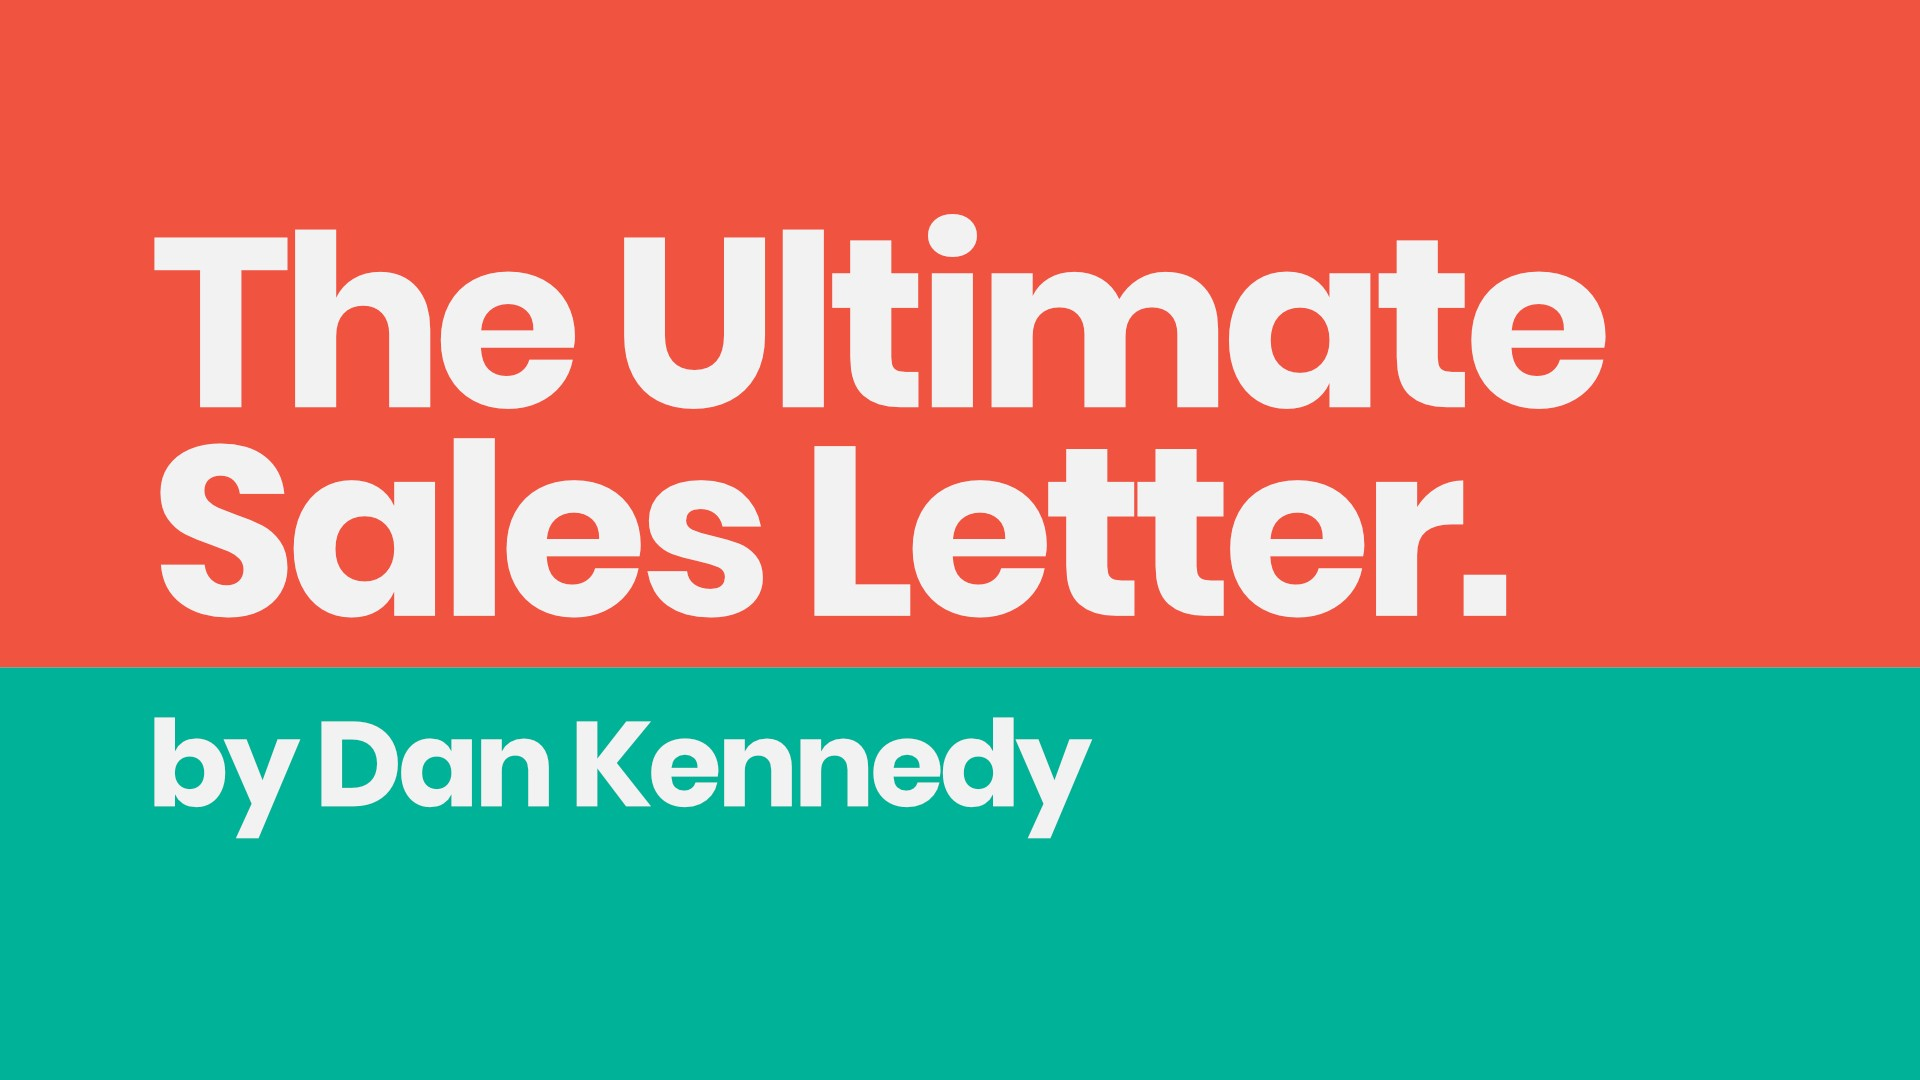 the ultimate sales letter pdf free download the ultimate sales letter dan kennedy pdf 18390